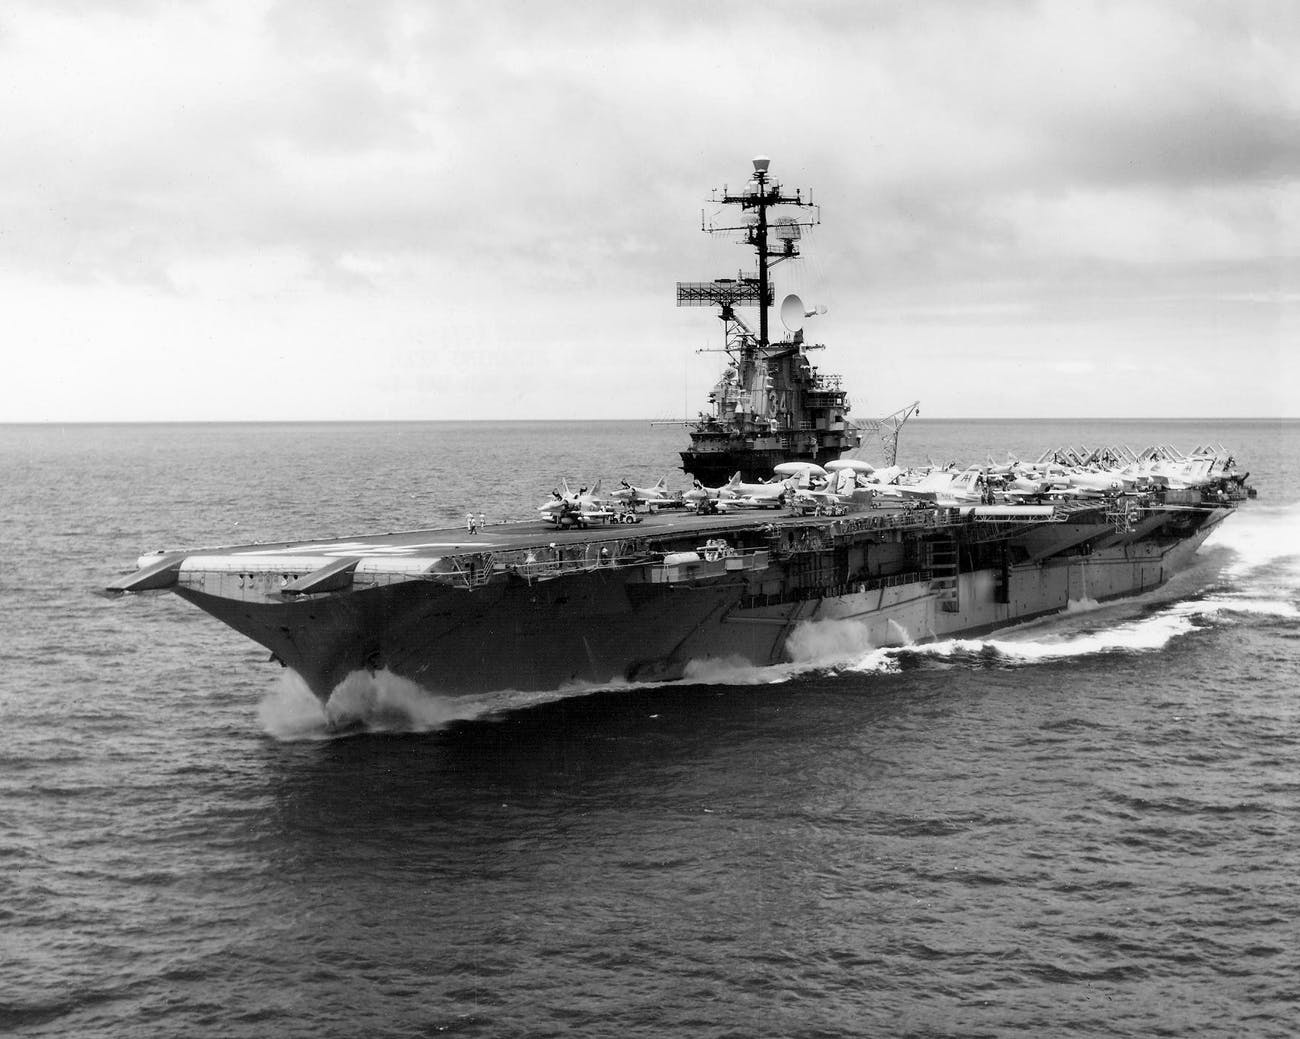 10 Years Later After Sinking, the Aircraft Carrier 'USS Oriskany' Is